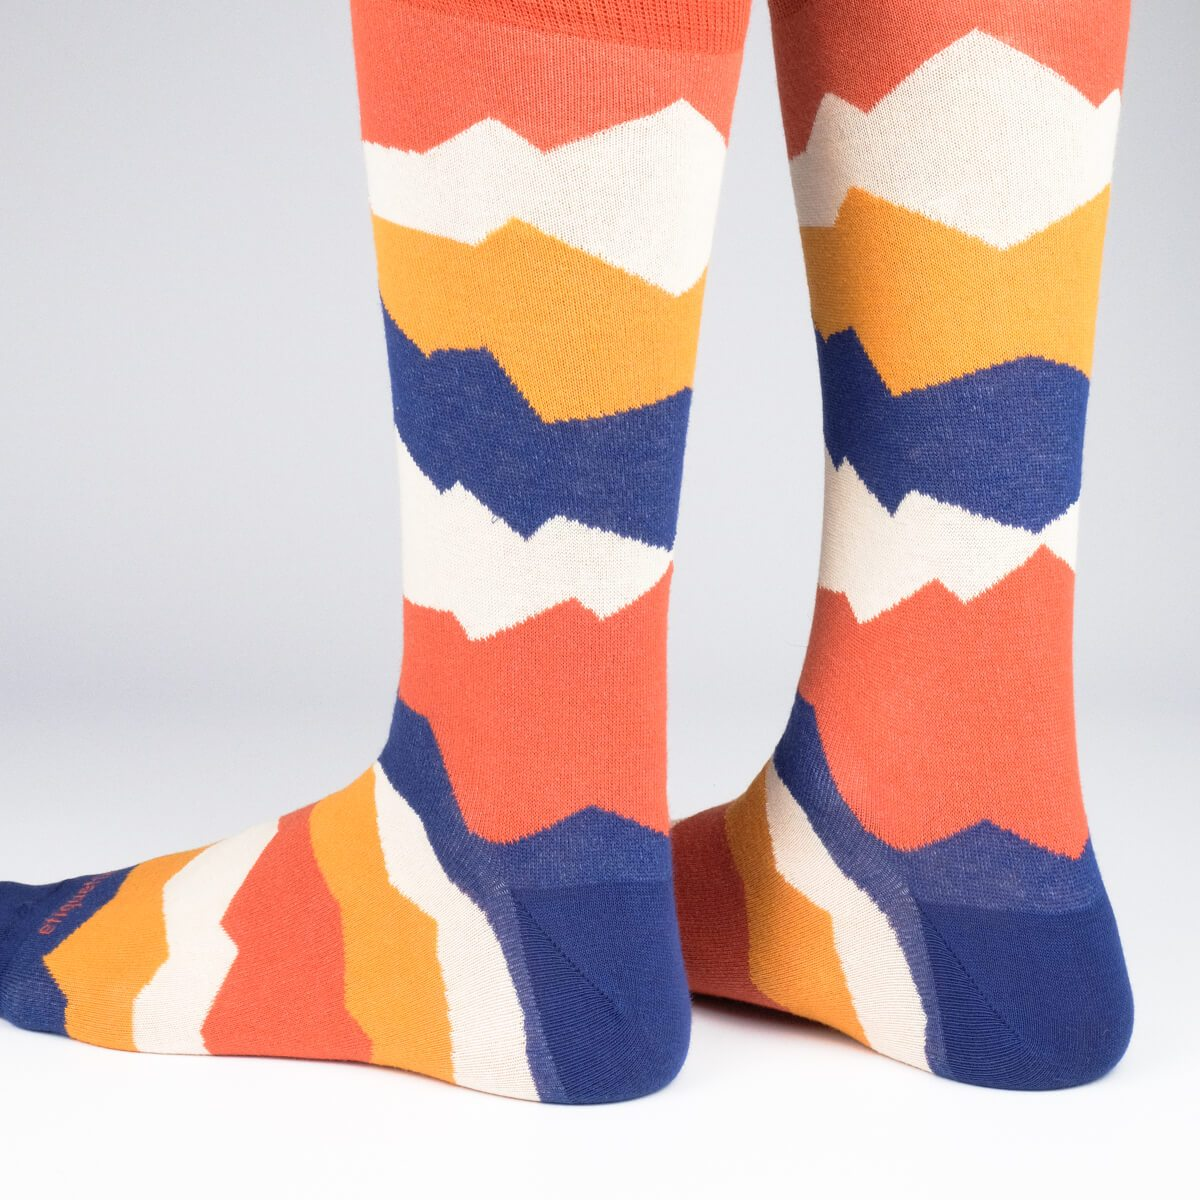 Seismic - Orange - Mens Socks | Etiquette Clothiers Global Official